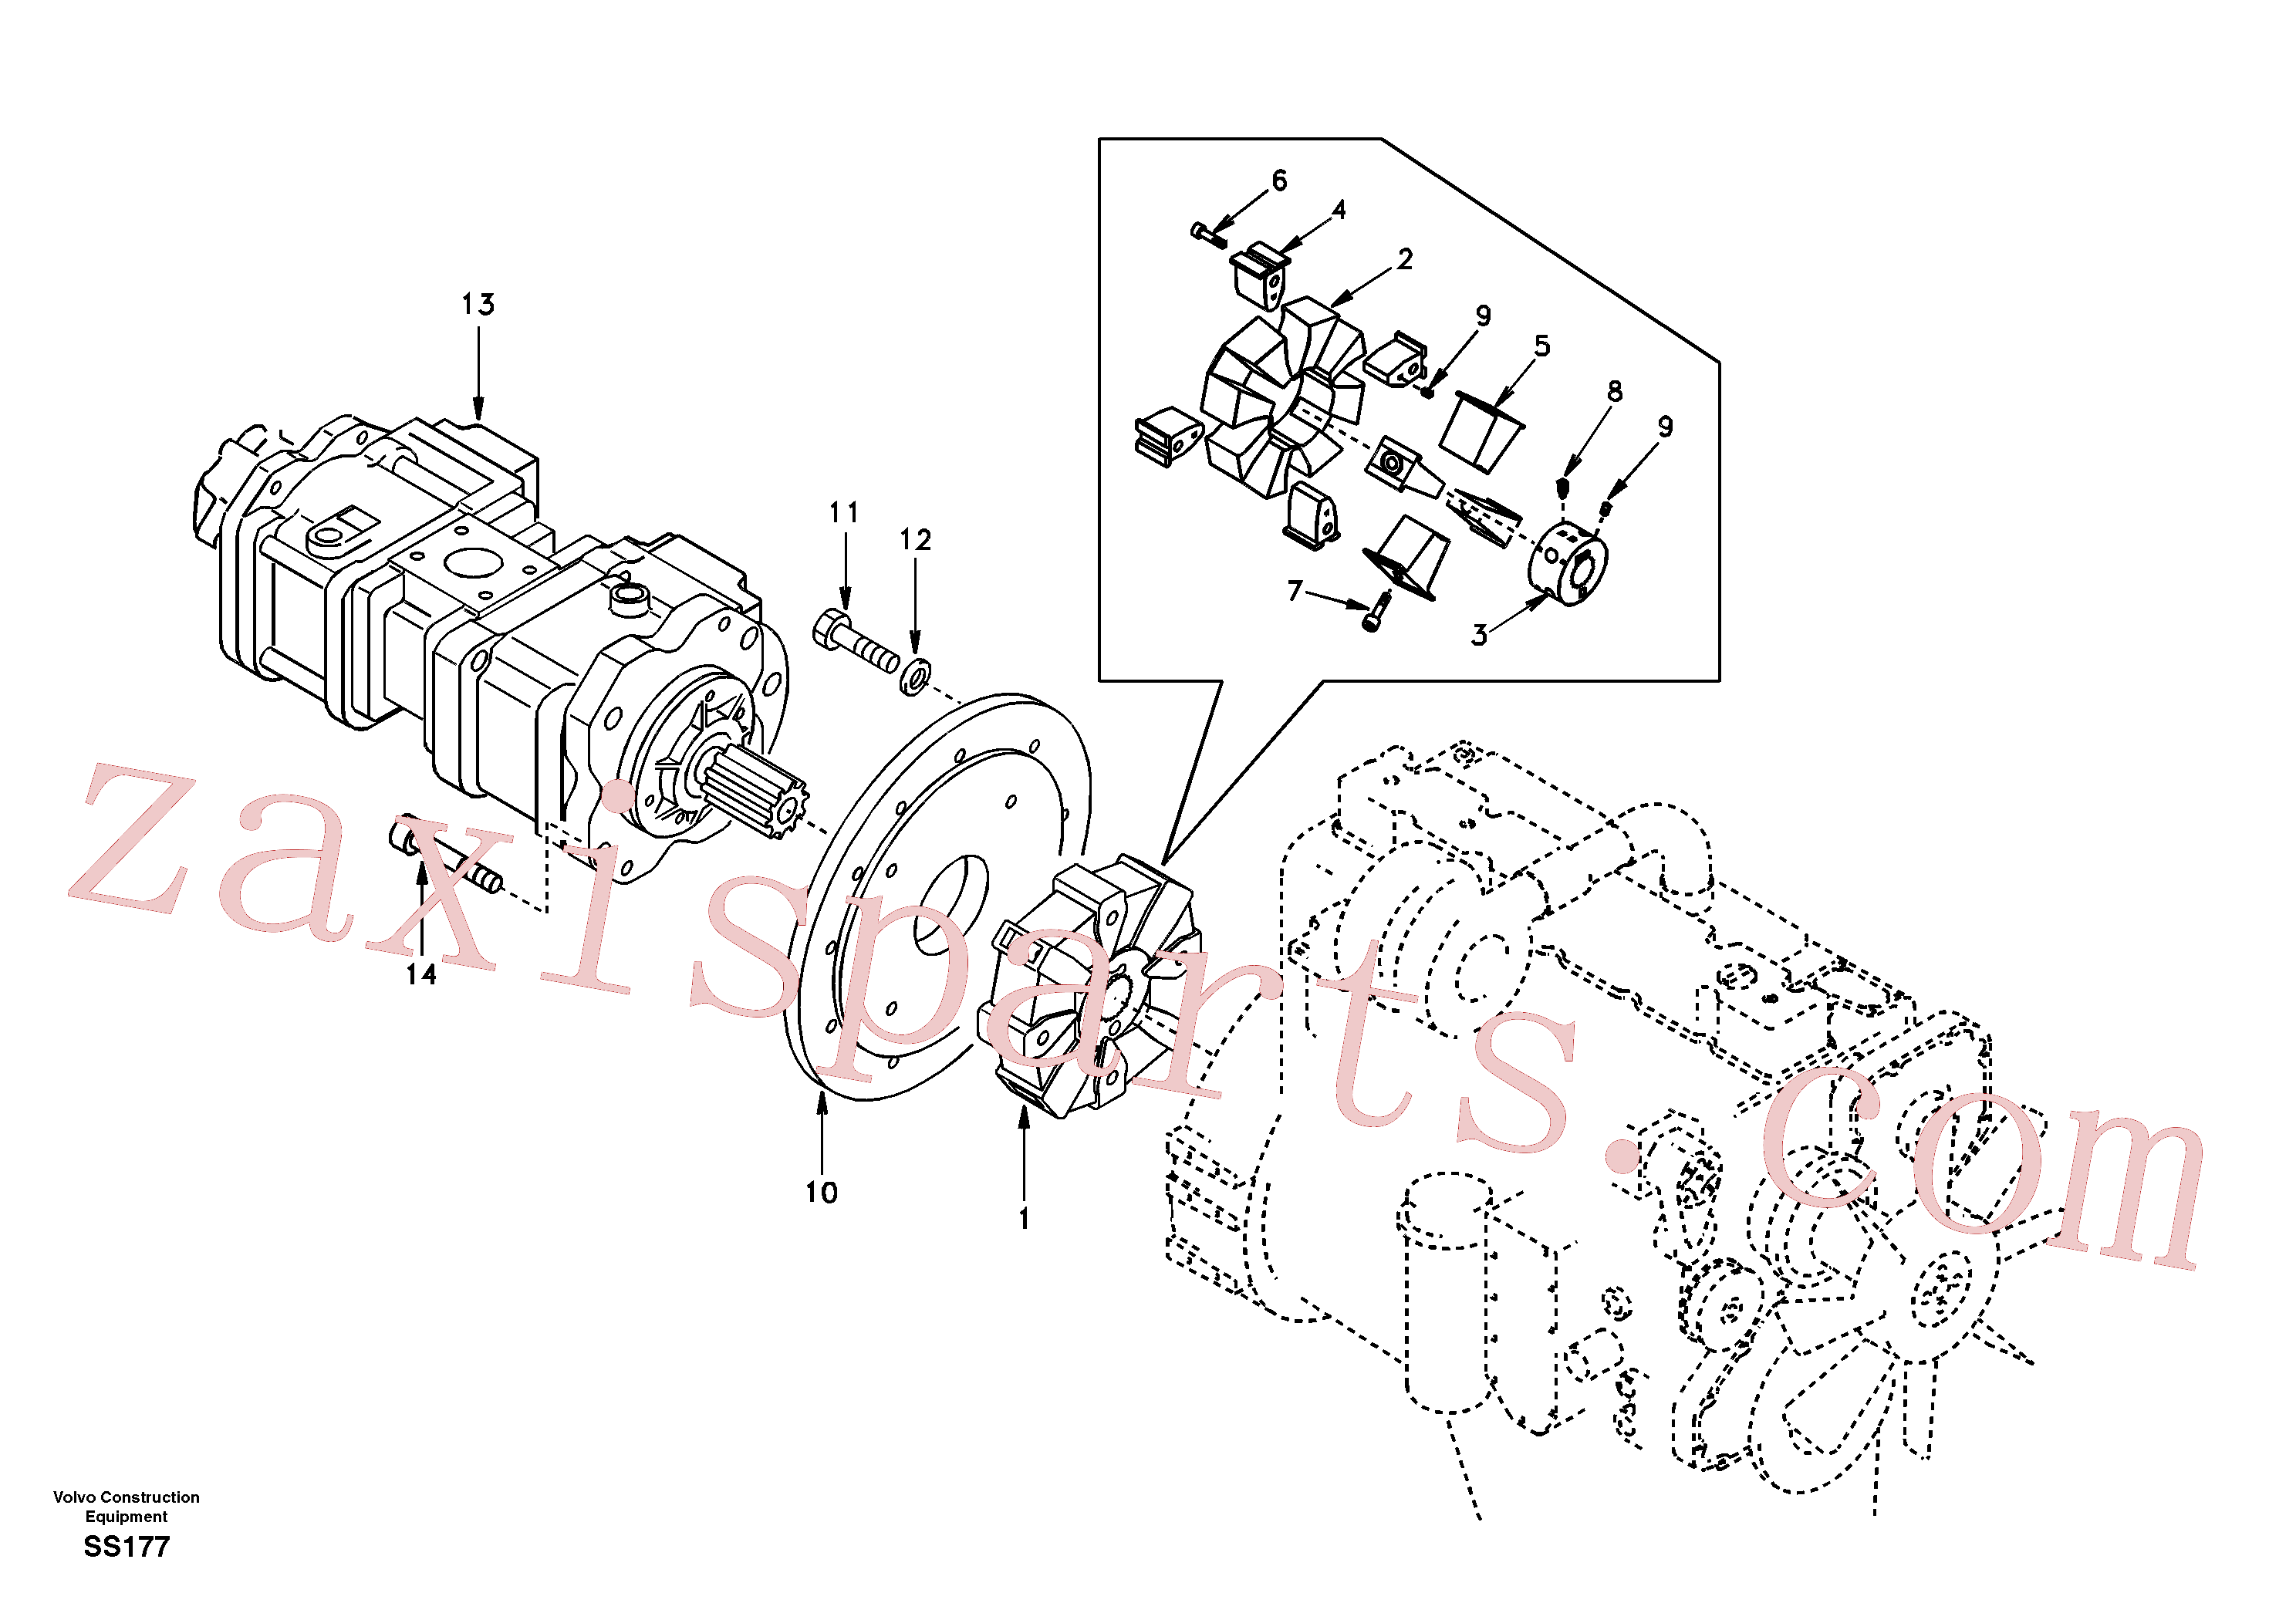 SADF046 for Volvo Pump gearbox with assembling parts(SS177 assembly)